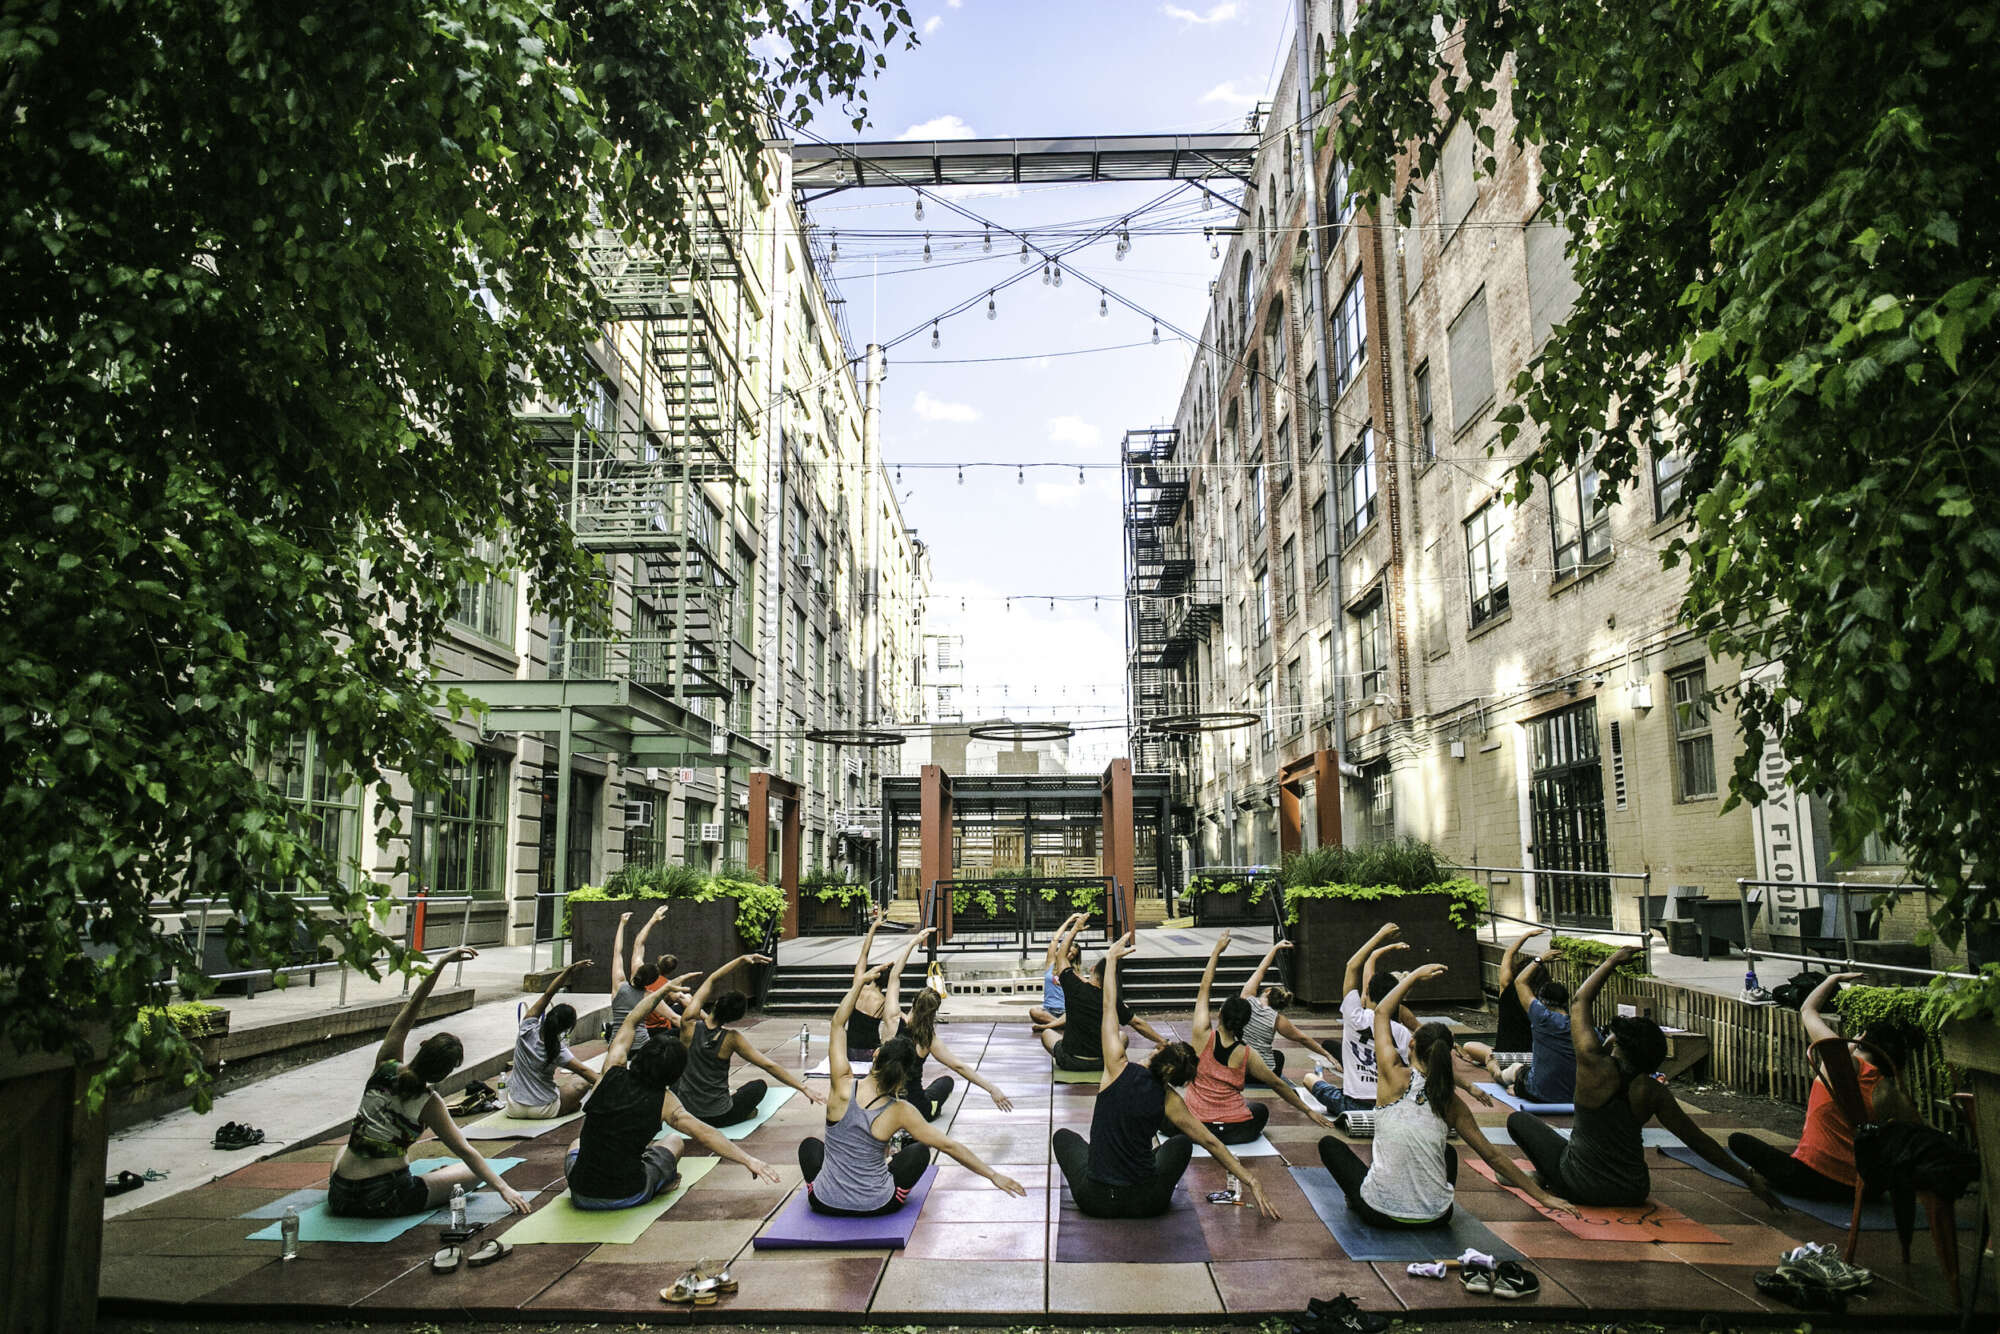 Industry City courtyard with guests practicing yoga at a class